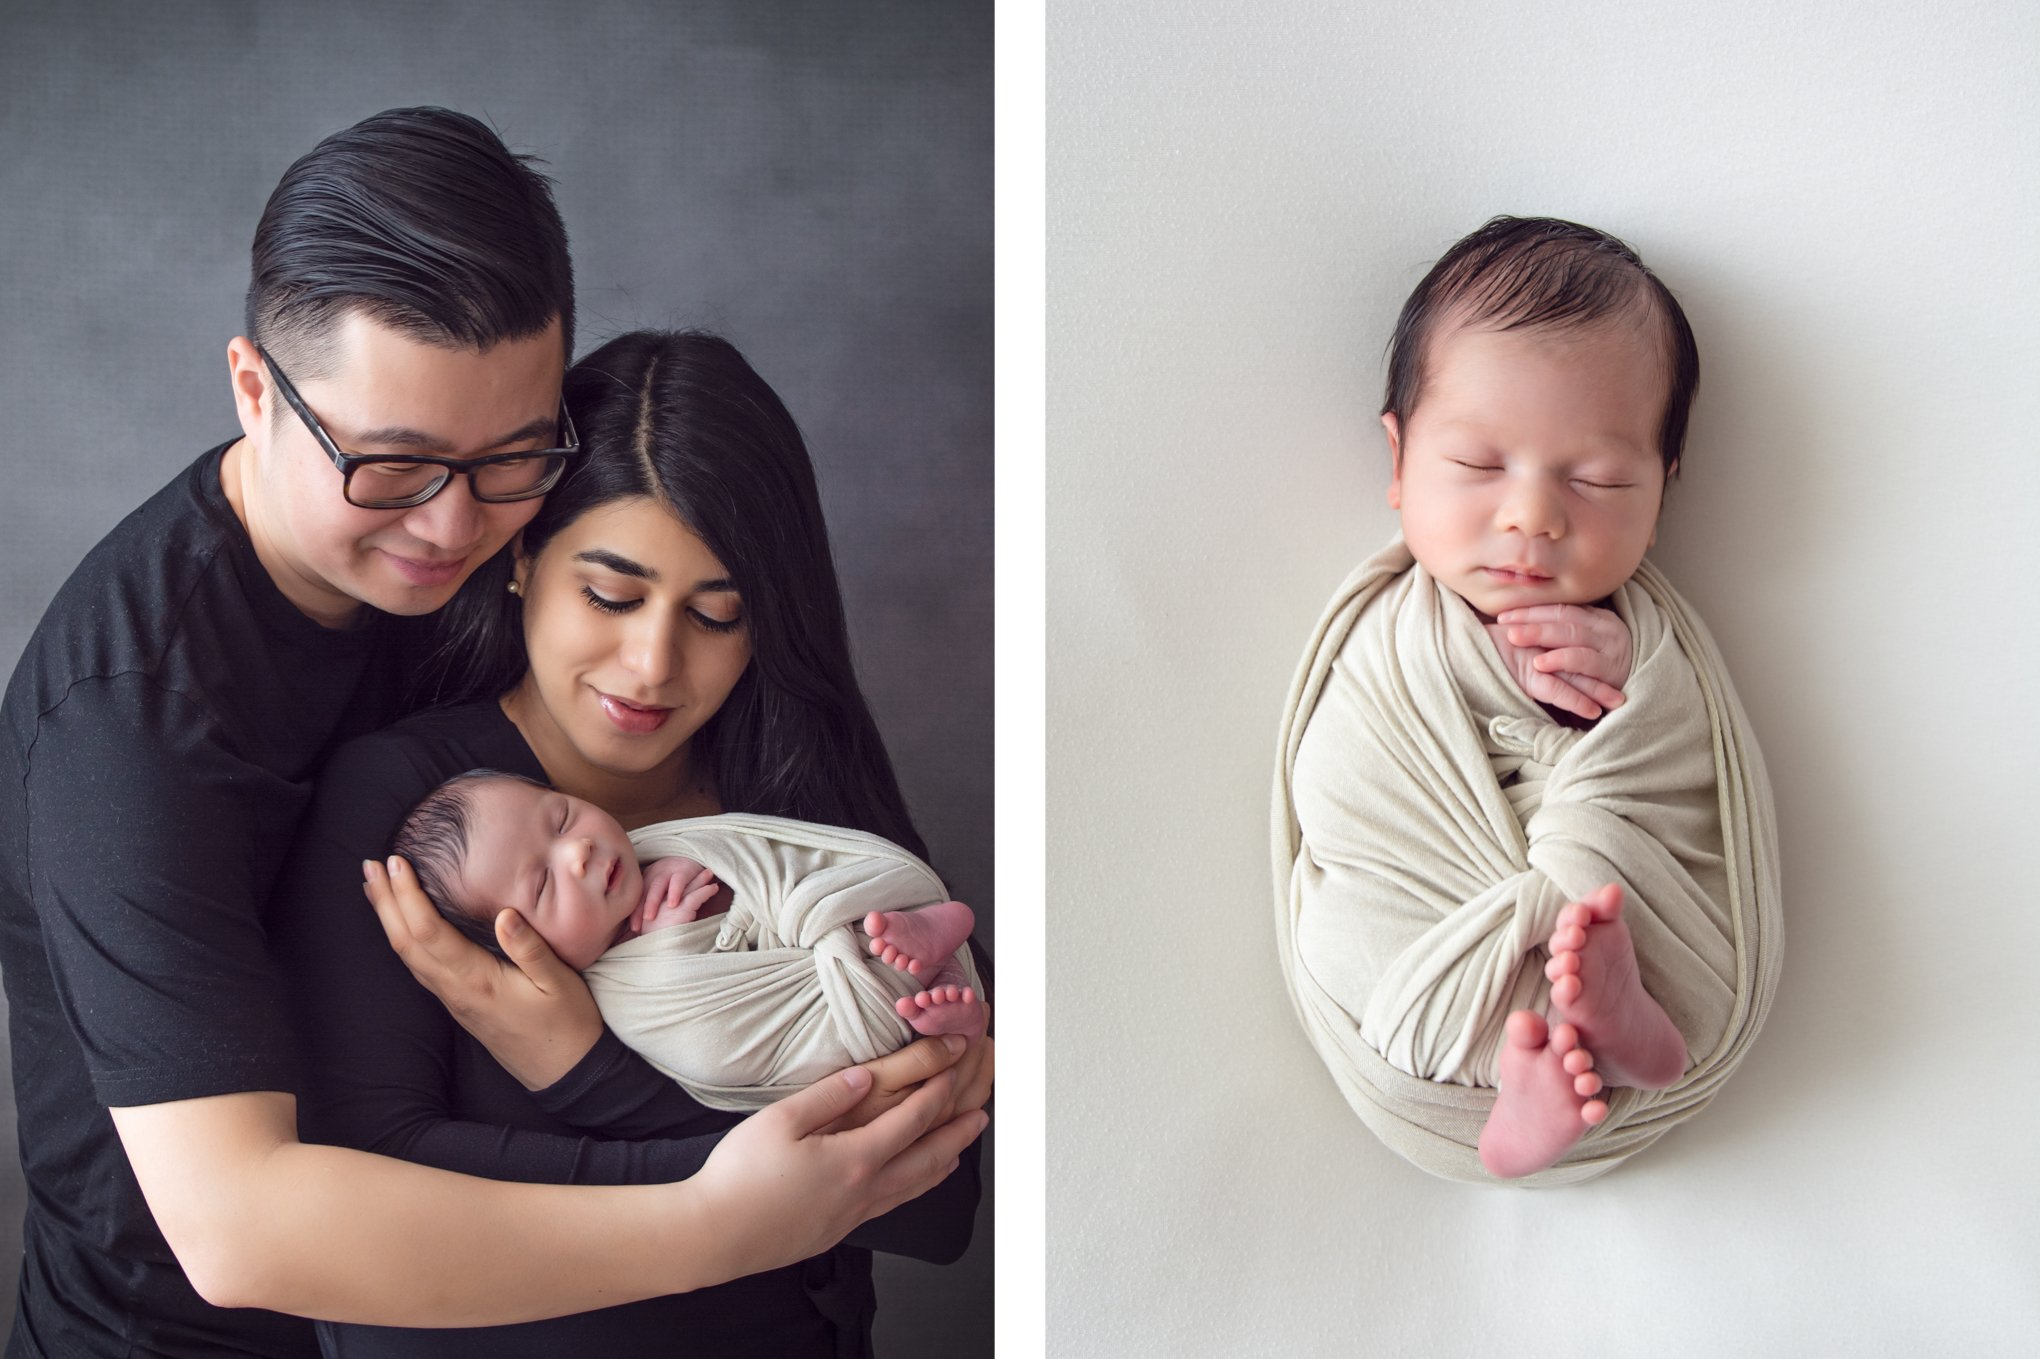 I am so pleased to announce the birth of our sweet baby boy Kai, the newest member of the team (and future recipe taster)! | aheadofthyme.com